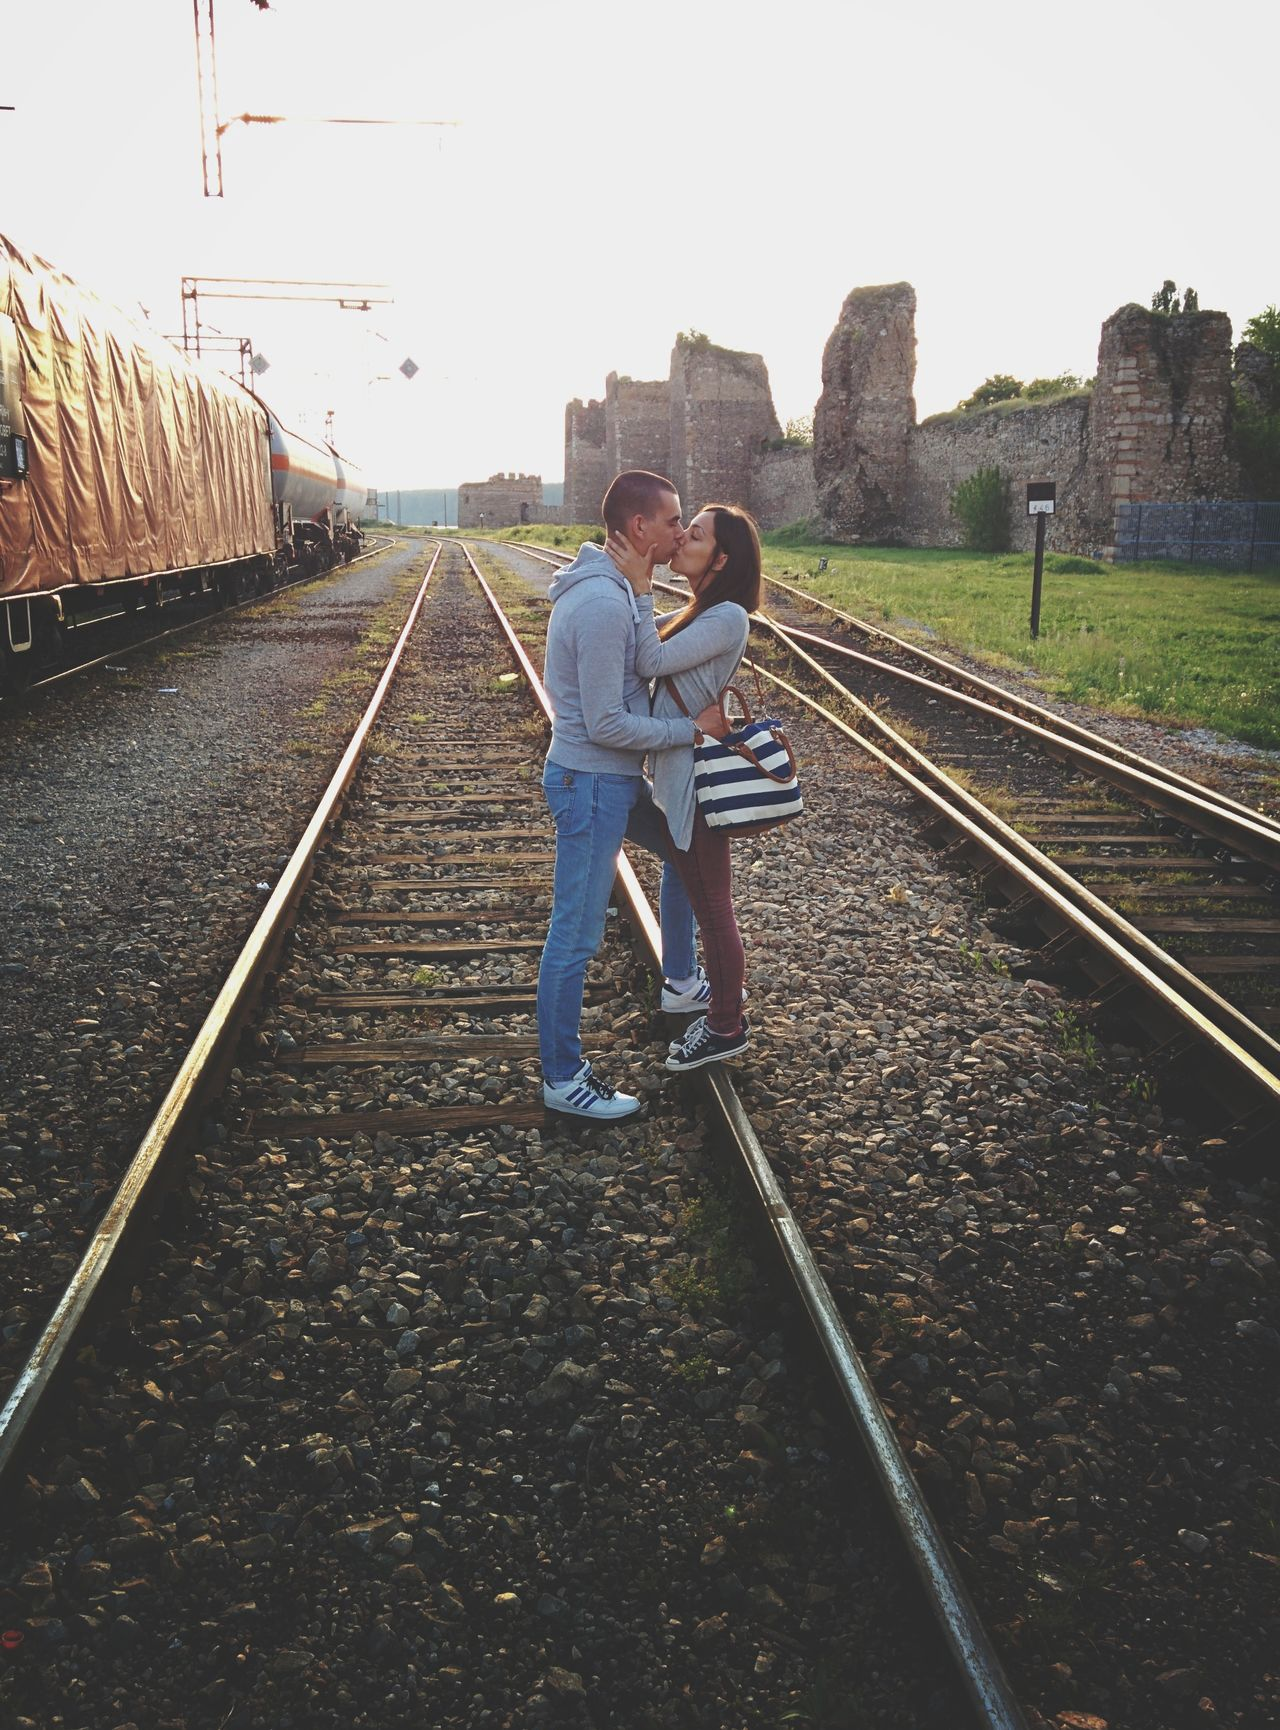 Two People Full Length Childhood Outdoors Togetherness Rear View Real People Men Day Friendship People Adult Sky Young Adult Human Body Part Goodbye Train Train Station Leave Separation Kiss Rails Railstation